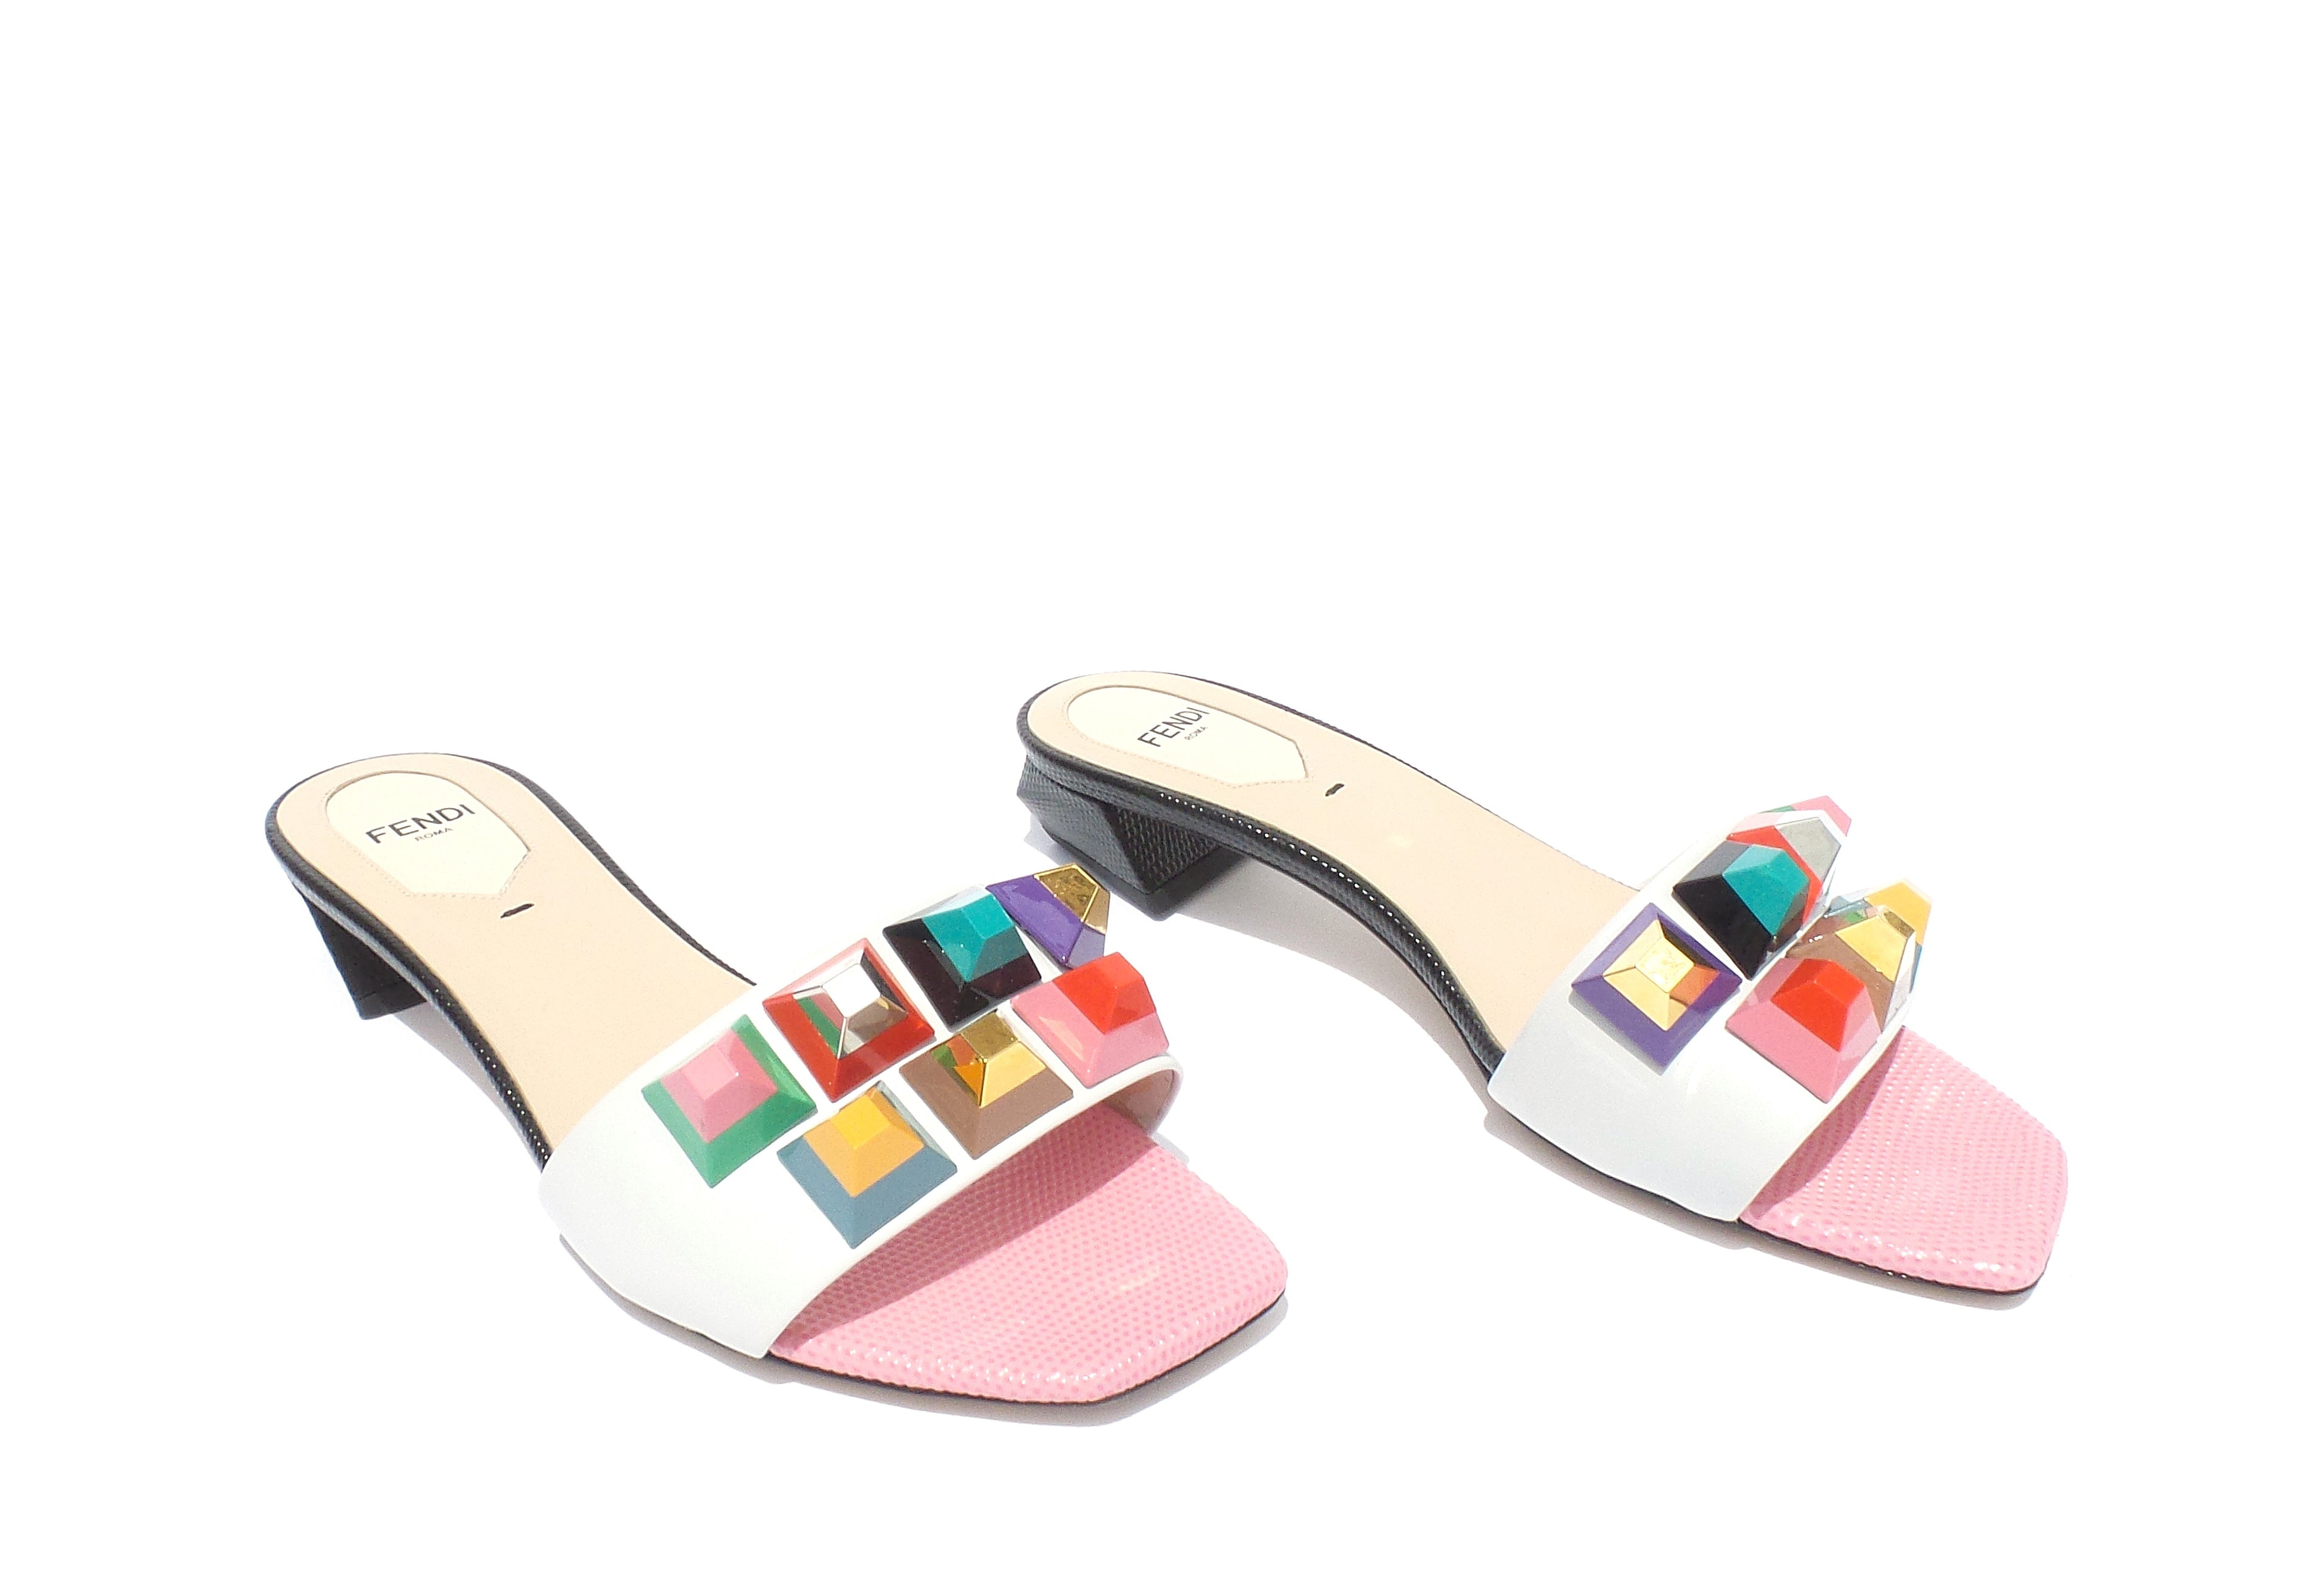 'Sold' FENDI SS16 White Leather Multi Lollipop Pyramid Studded Slide Sandals 36.5 $700